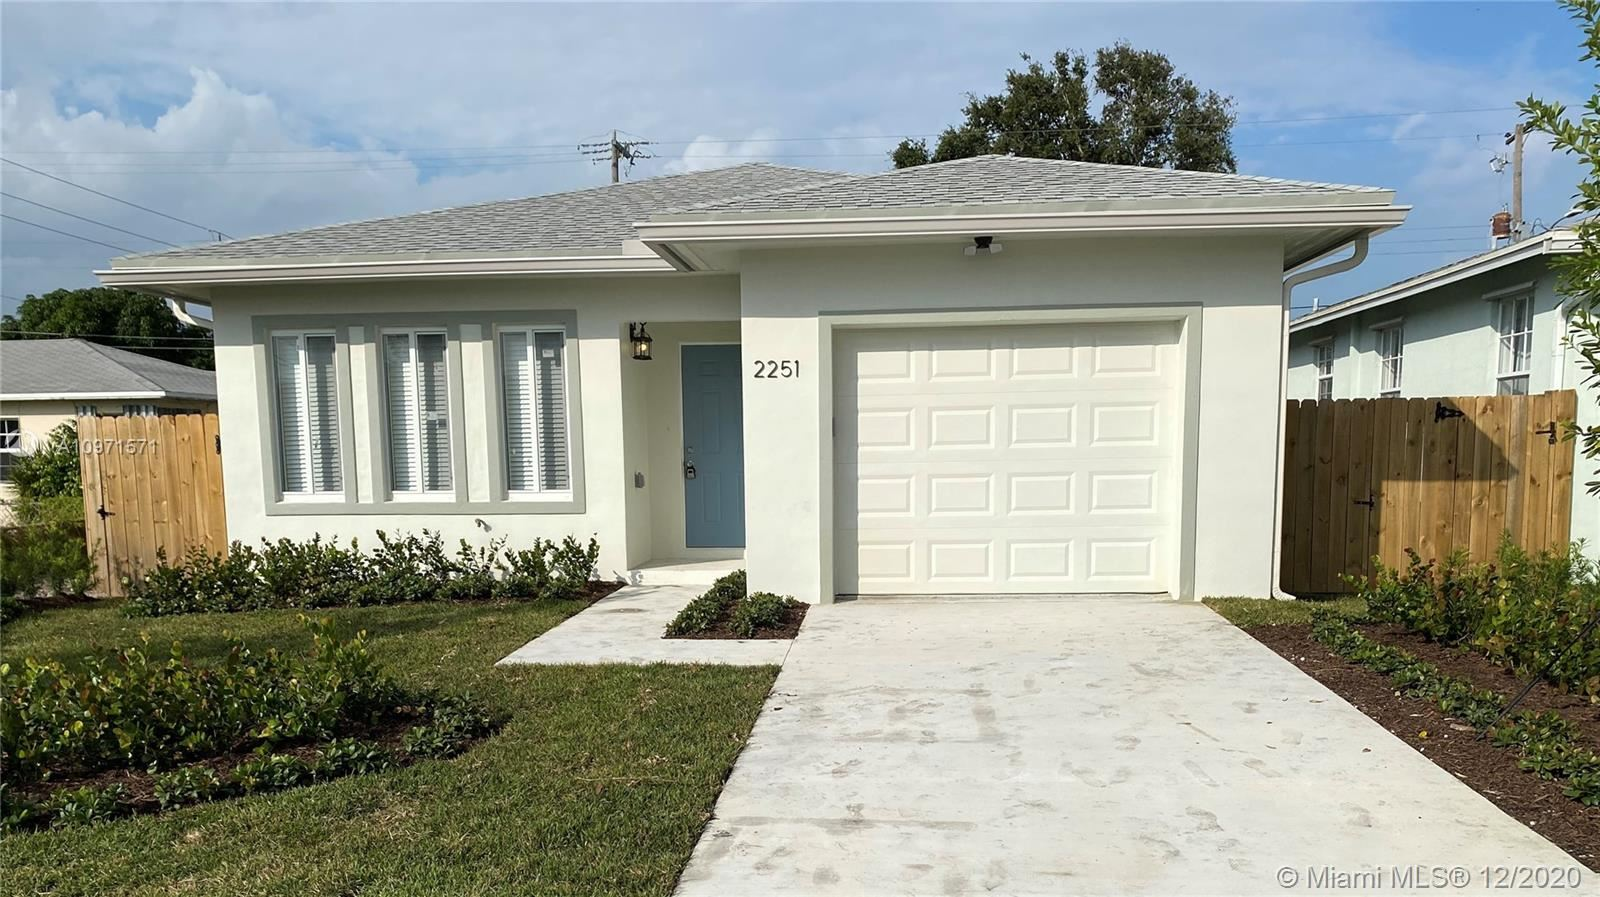 2251 Farragut St, Hollywood, FL 33020 - #: A10971571